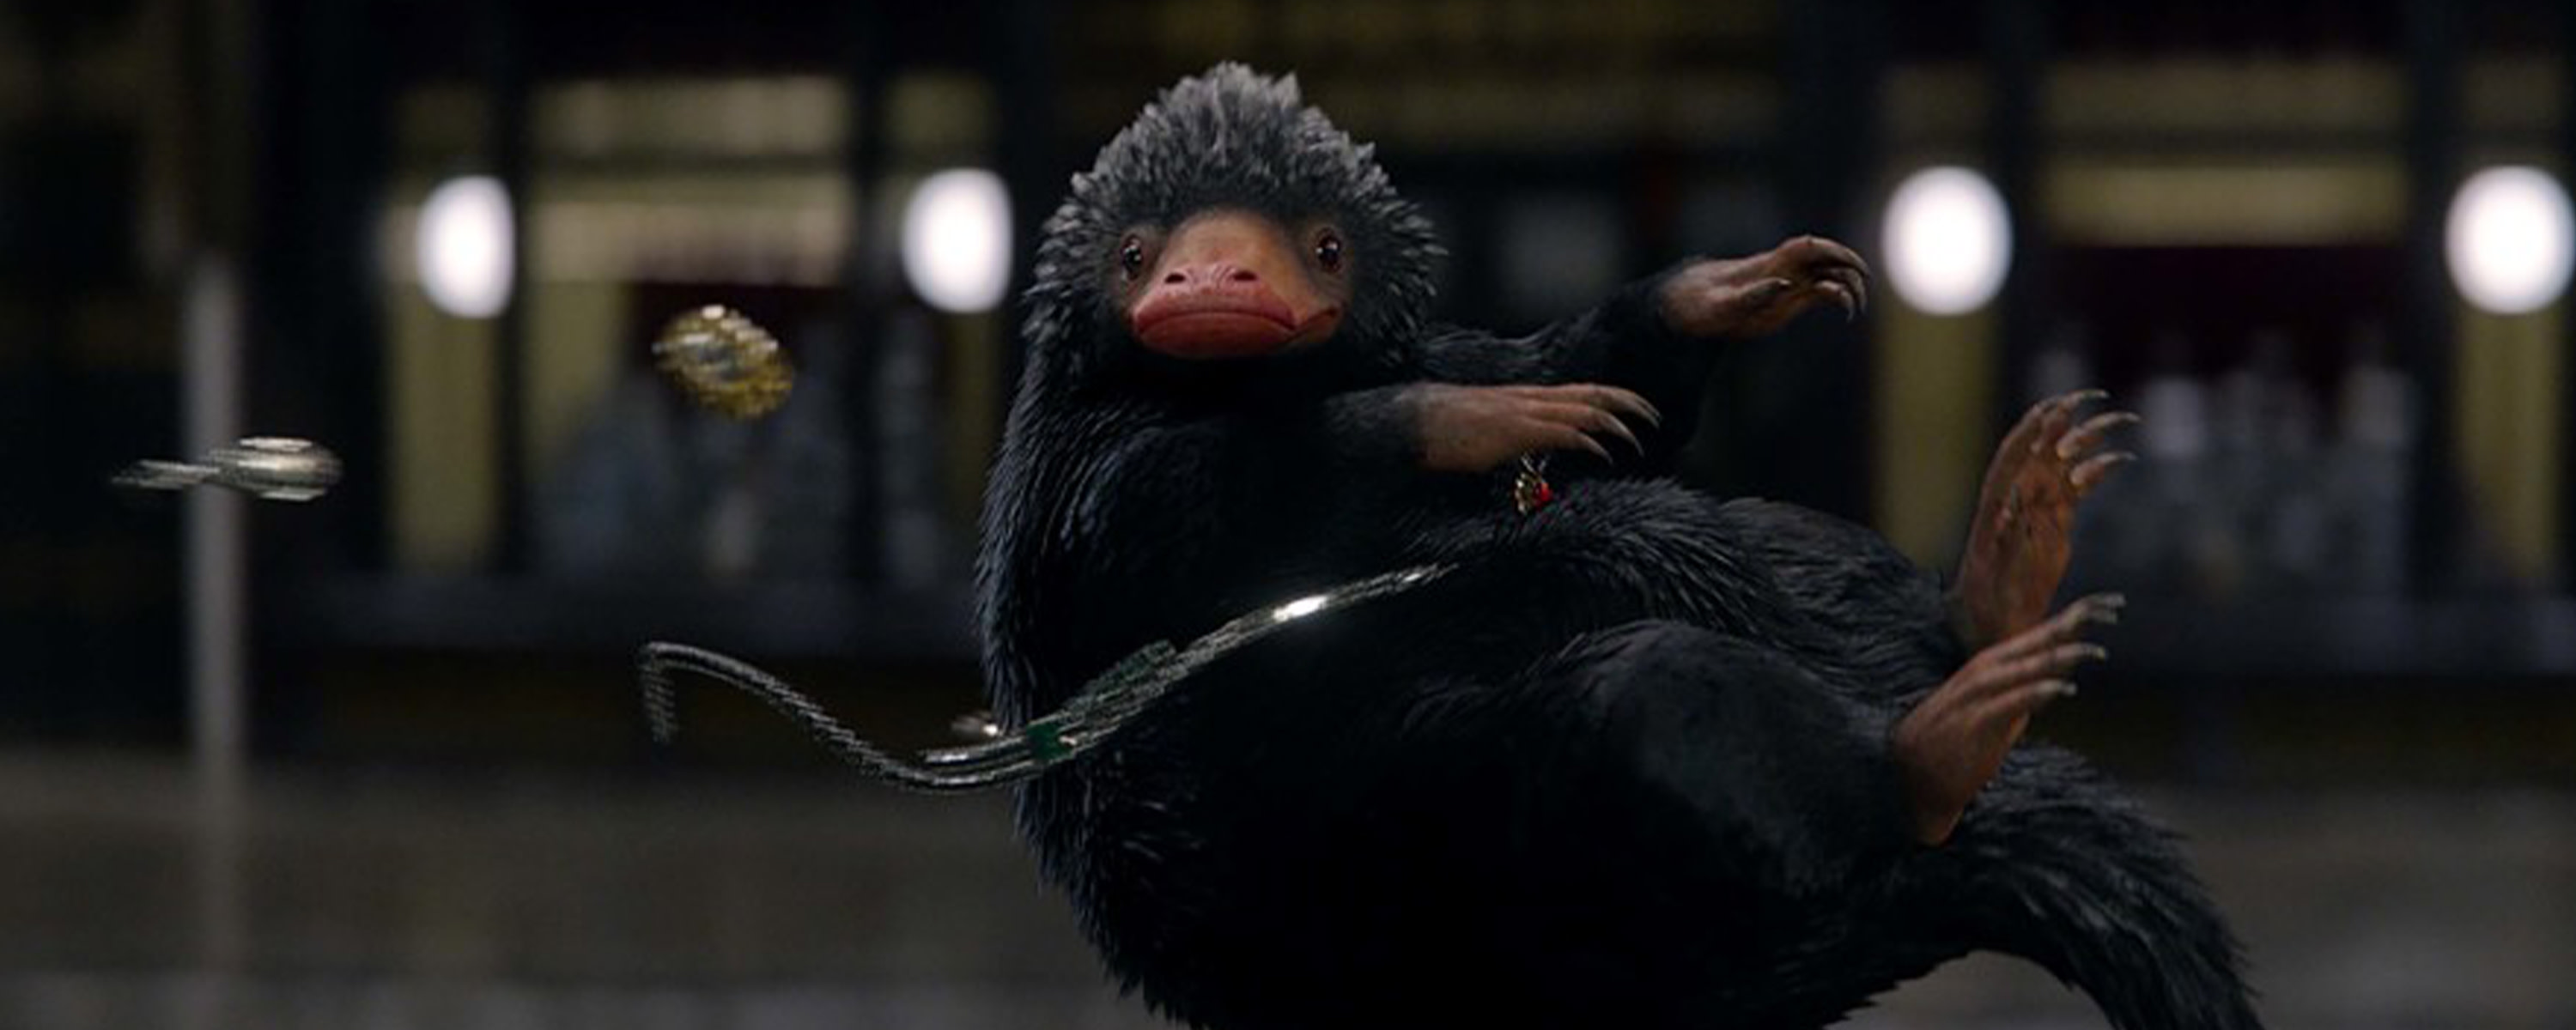 FB1-flying-niffler-store-web-header